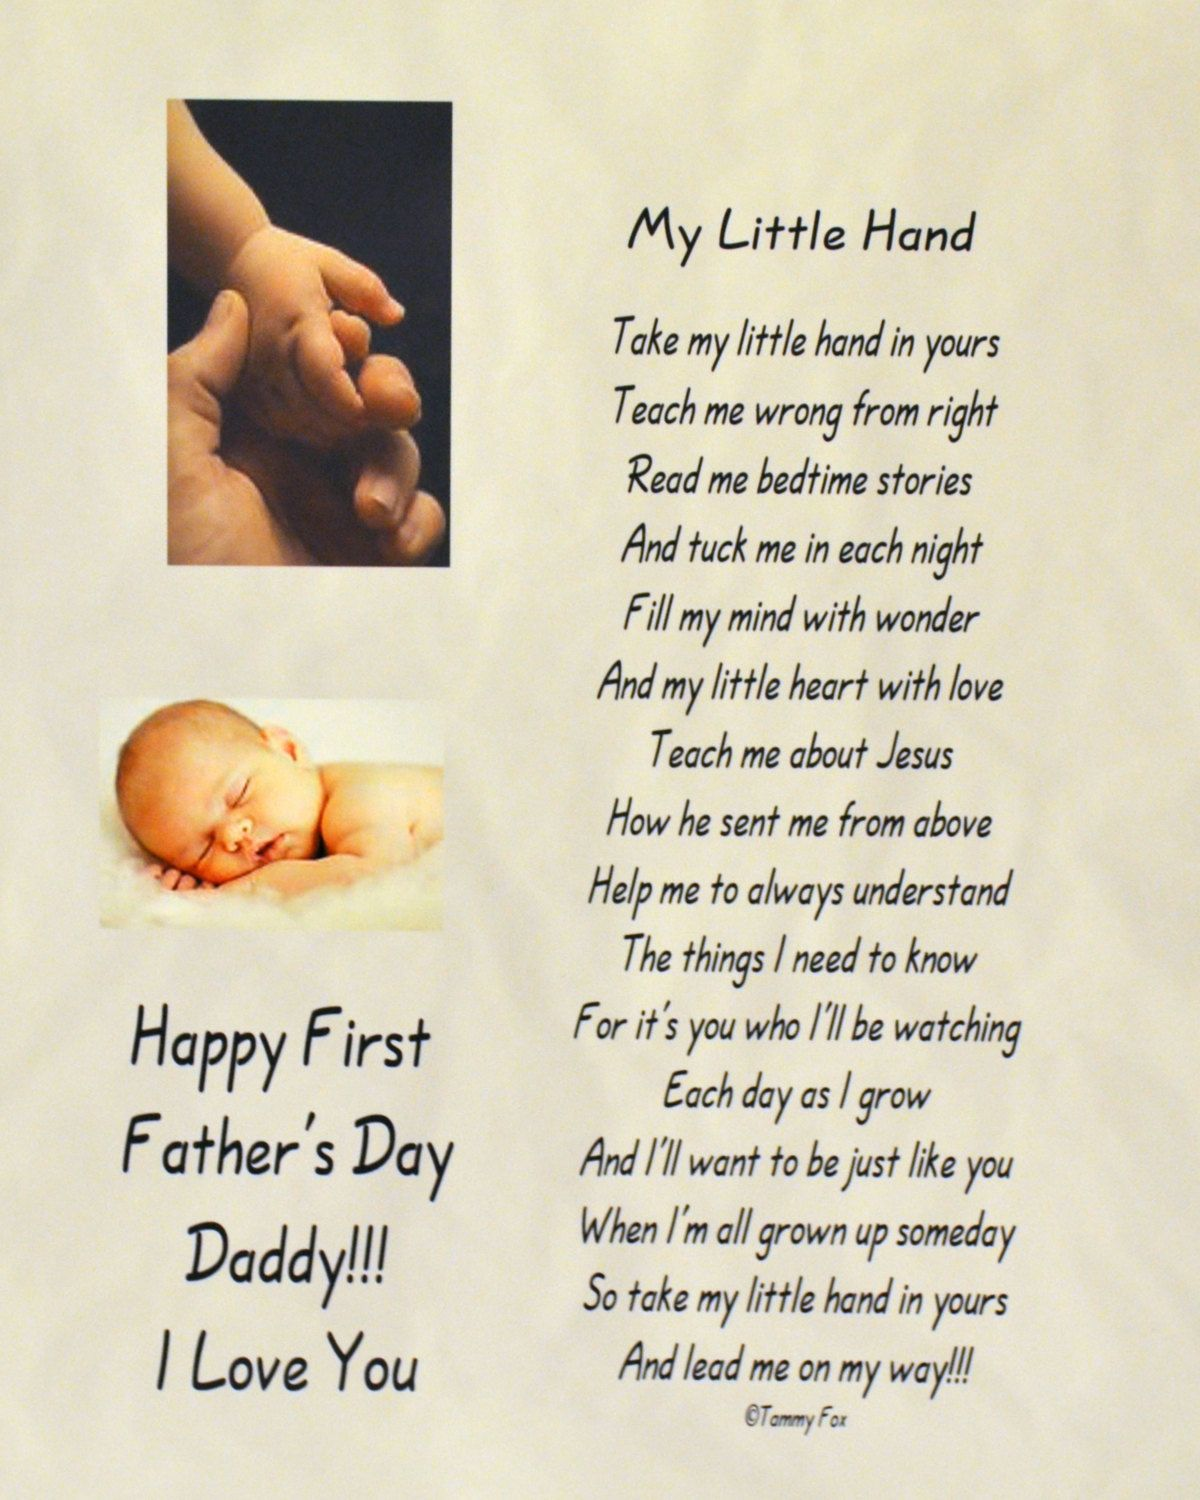 This Is A Precious Poem From Baby To Daddy And Makes The Perfect Gift For Fathers Day Birthday Or Just New Dad